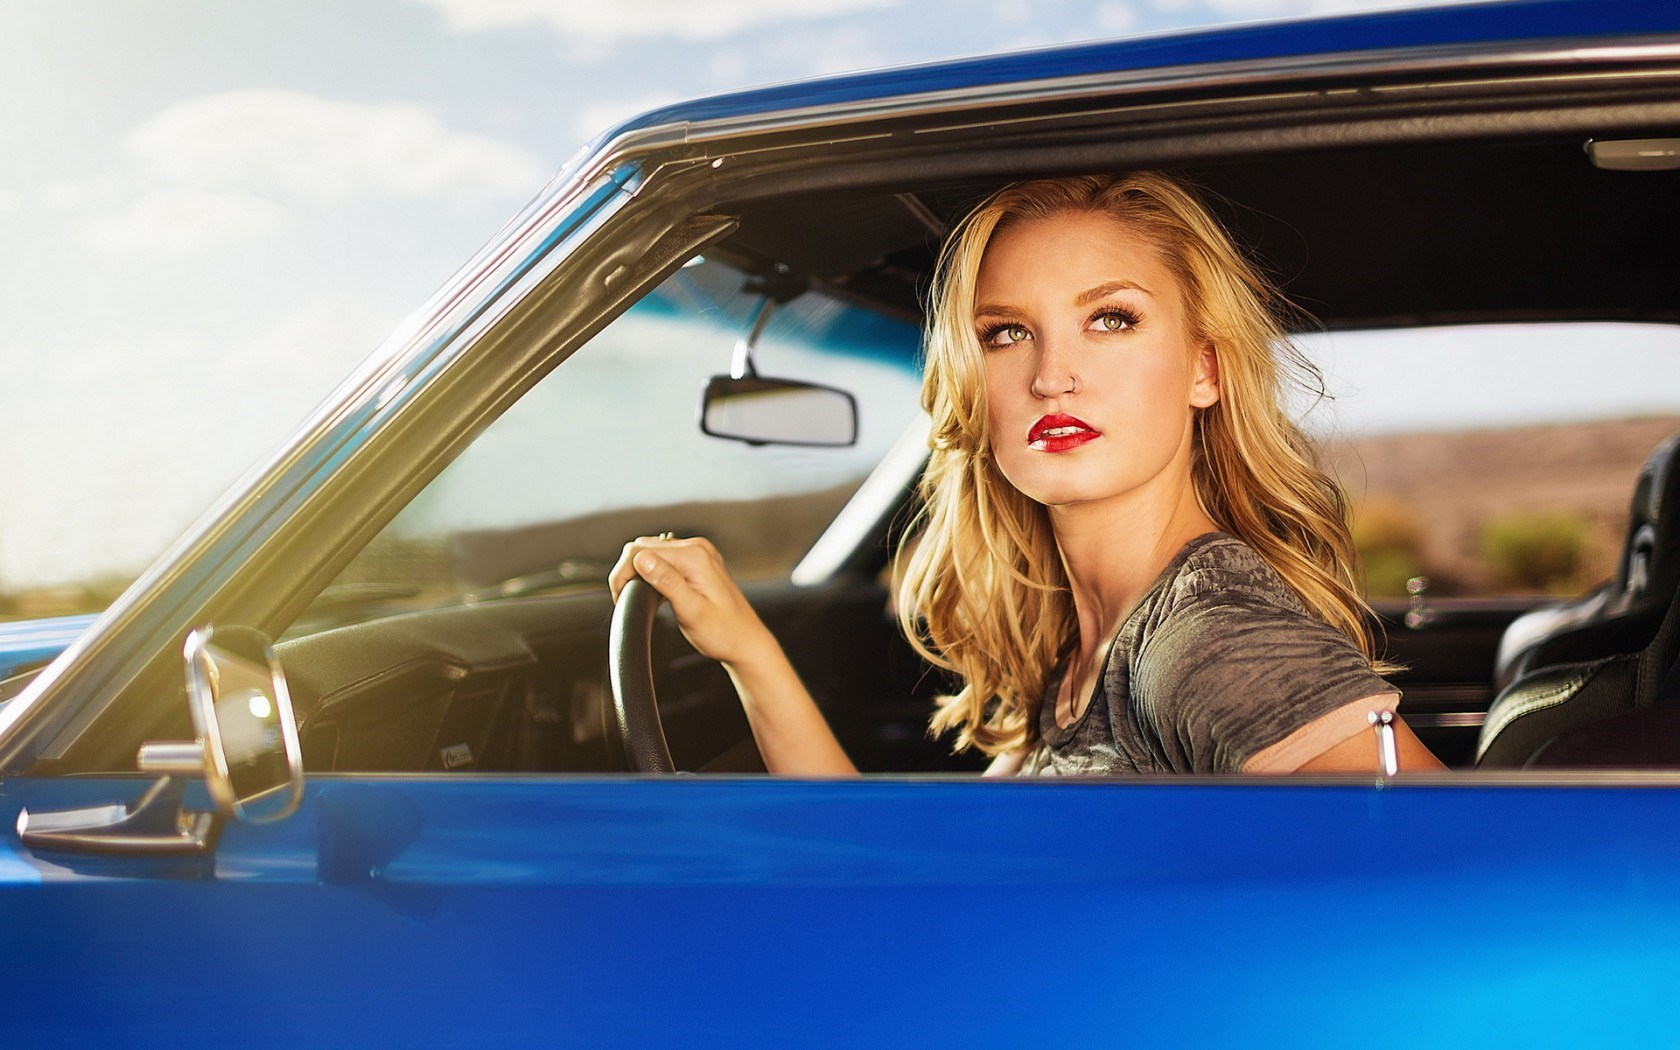 Car Beauty Blonde Girl